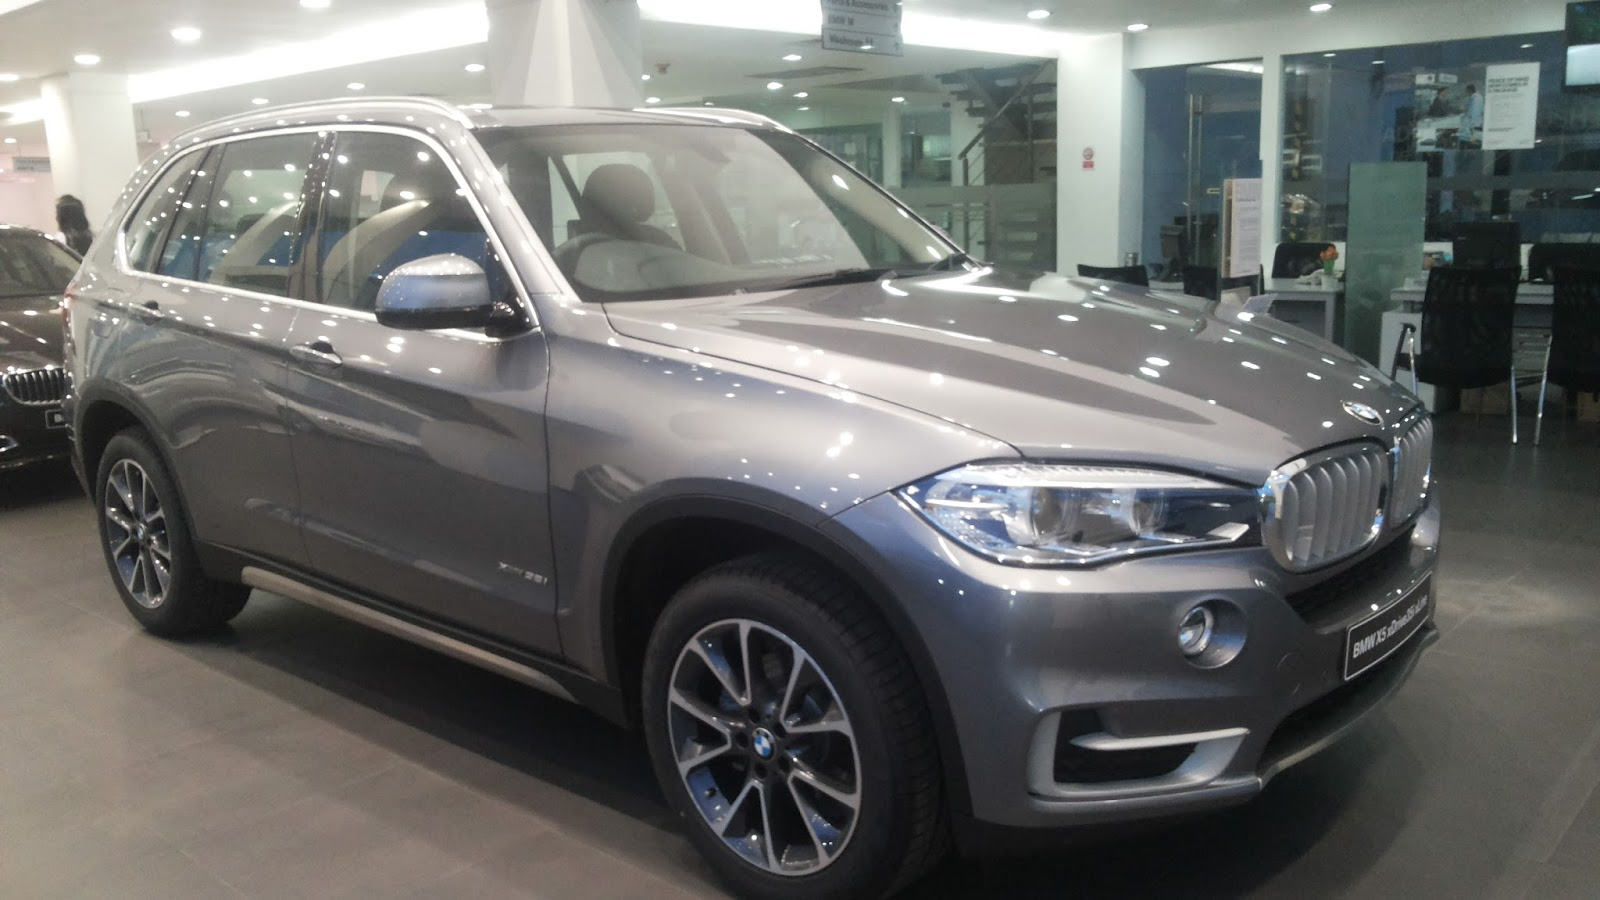 otaknakal all new bmw x5 xline 3 5 indonesia. Black Bedroom Furniture Sets. Home Design Ideas